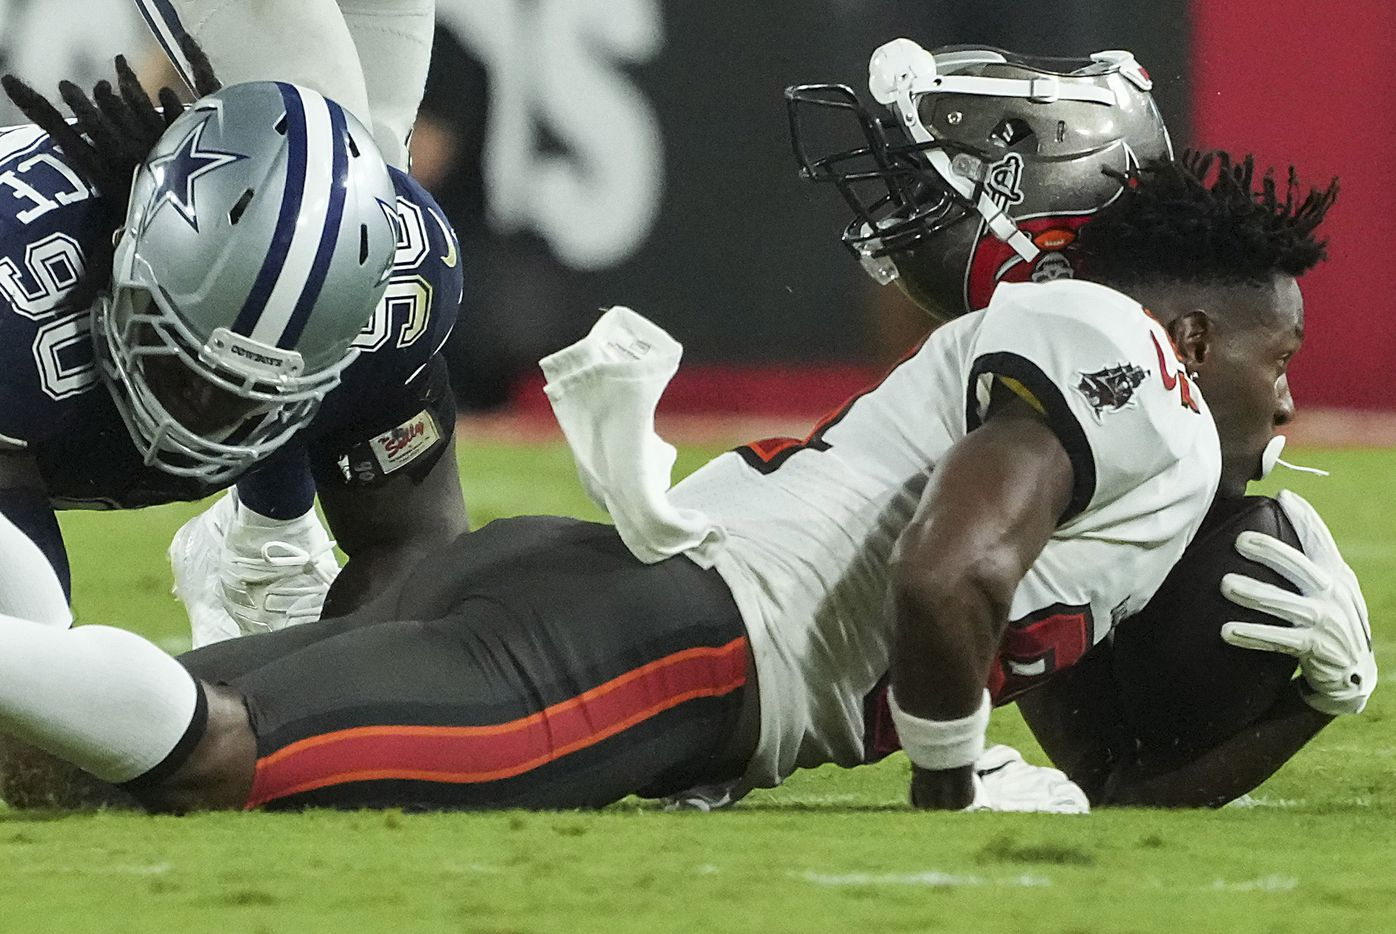 Tampa Bay Buccaneers wide receiver Antonio Brown (81) loses his helmet as he is brought down by Dallas Cowboys defensive end DeMarcus Lawrence (90) during the second half of an NFL football game at Raymond James Stadium on Thursday, Sept. 9, 2021, in Tampa, Fla. The  Buccaneers won the game 31-29. (Smiley N. Pool/The Dallas Morning News)